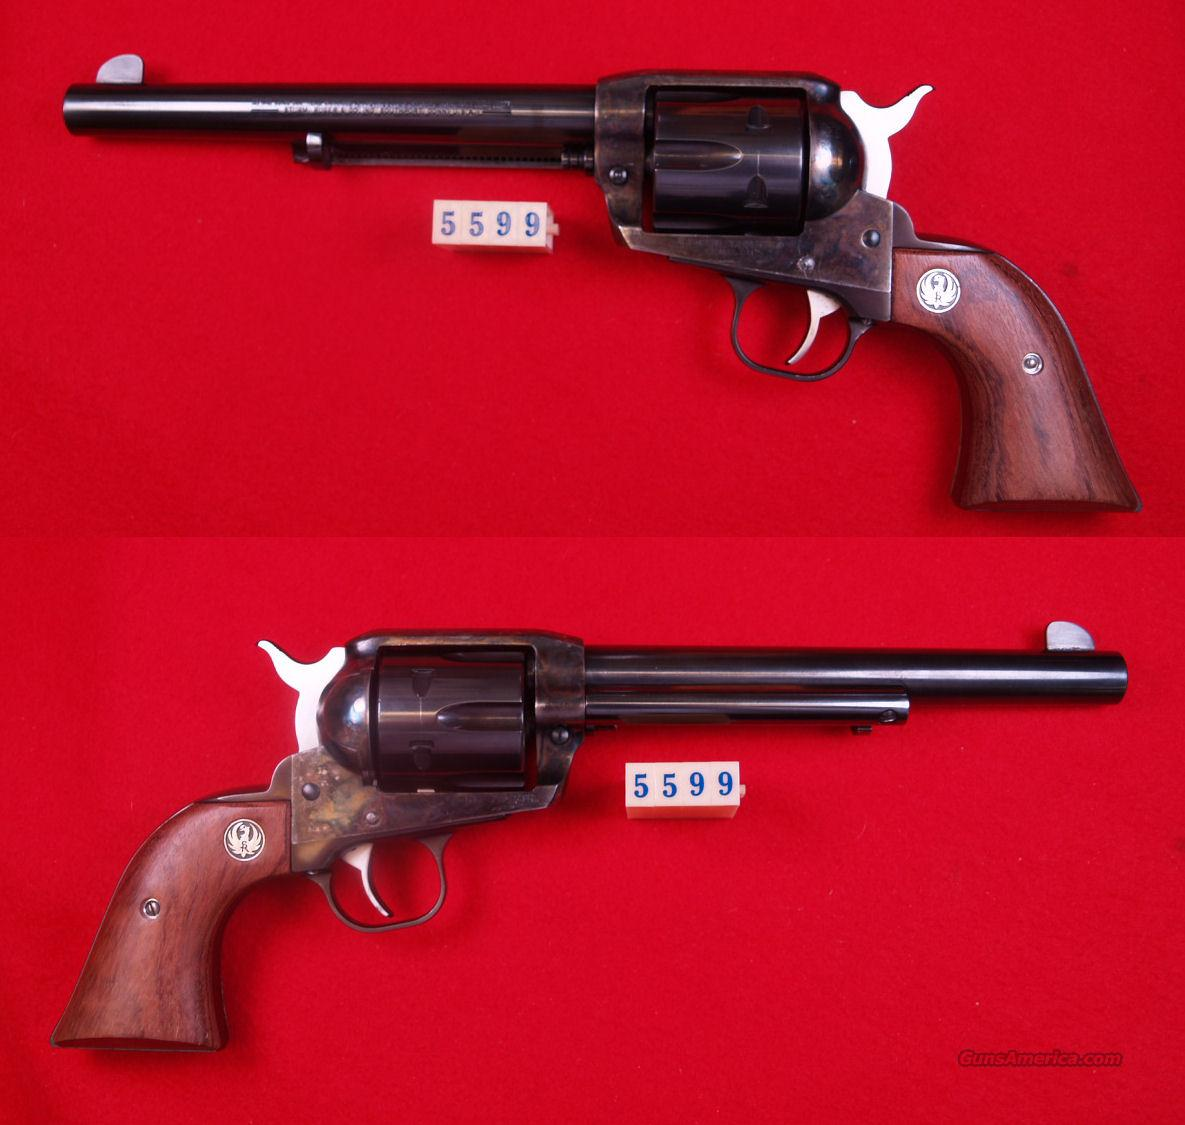 RUGER VAQUERO  44 MAG  Guns > Pistols > Ruger Single Action Revolvers > Cowboy Action